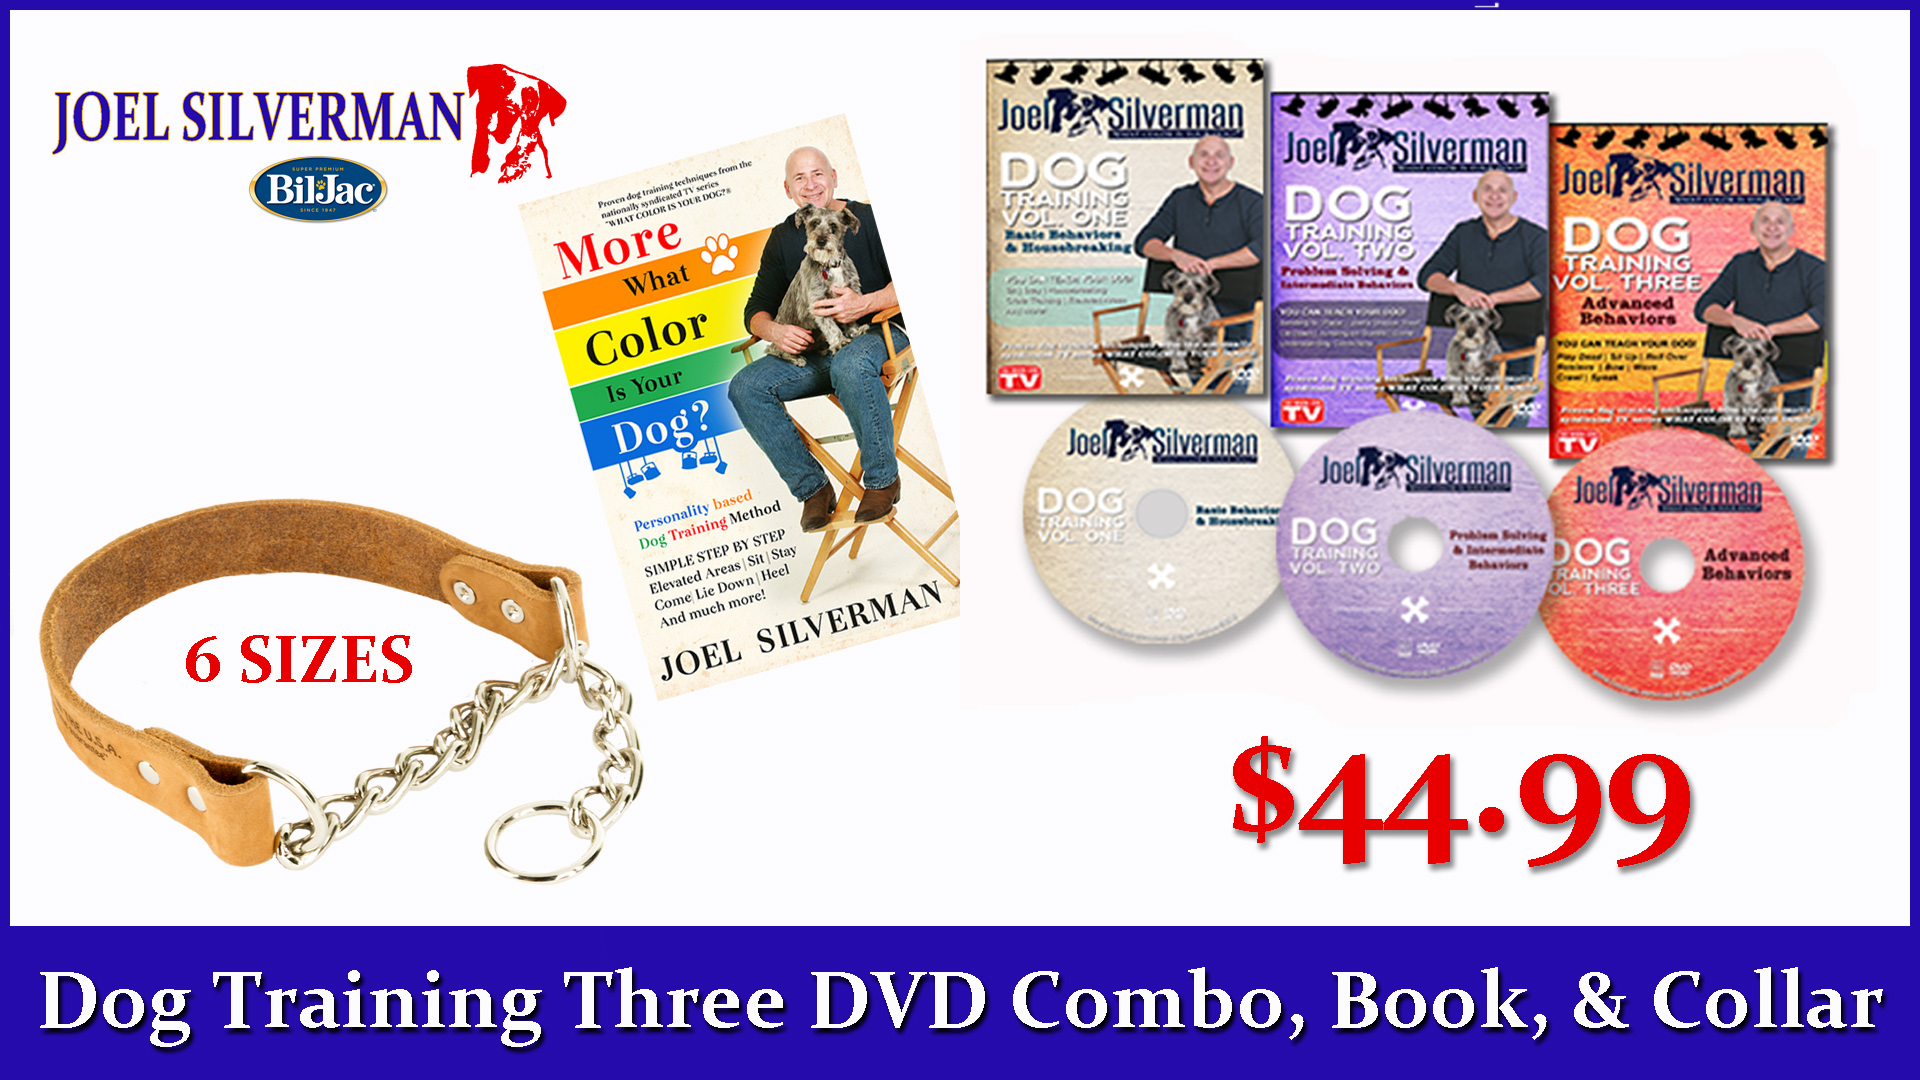 Joel Silverman's 3 DVD Set   Alternative Training Collar   More What Color Is Your Dog?